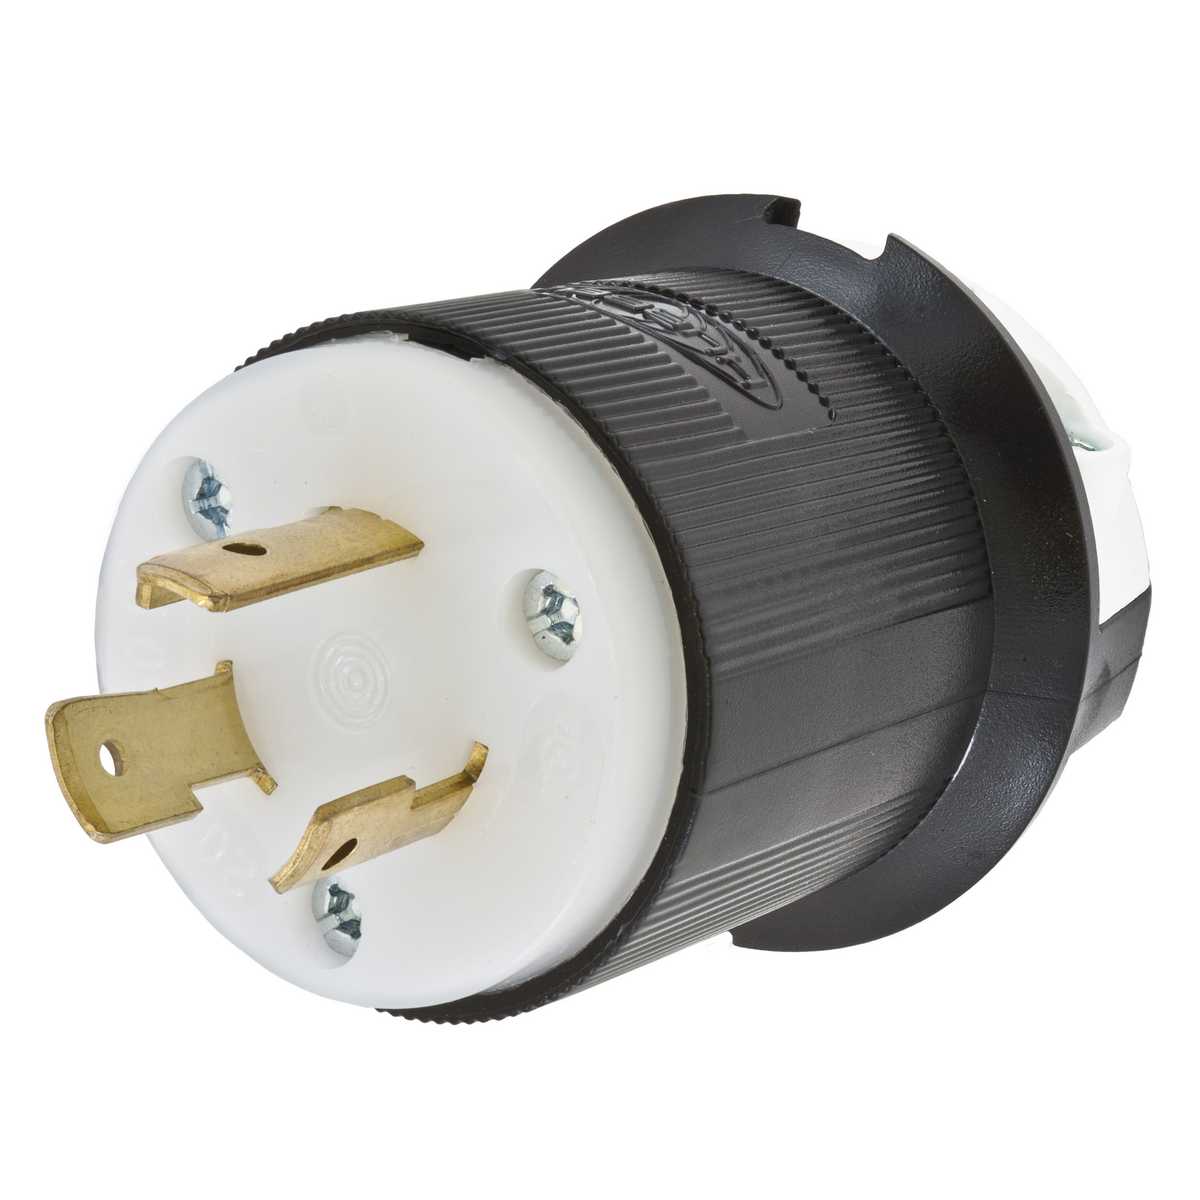 hight resolution of hubhbl2321 lkg plug 20a 250v l6 20p b w hbl2321